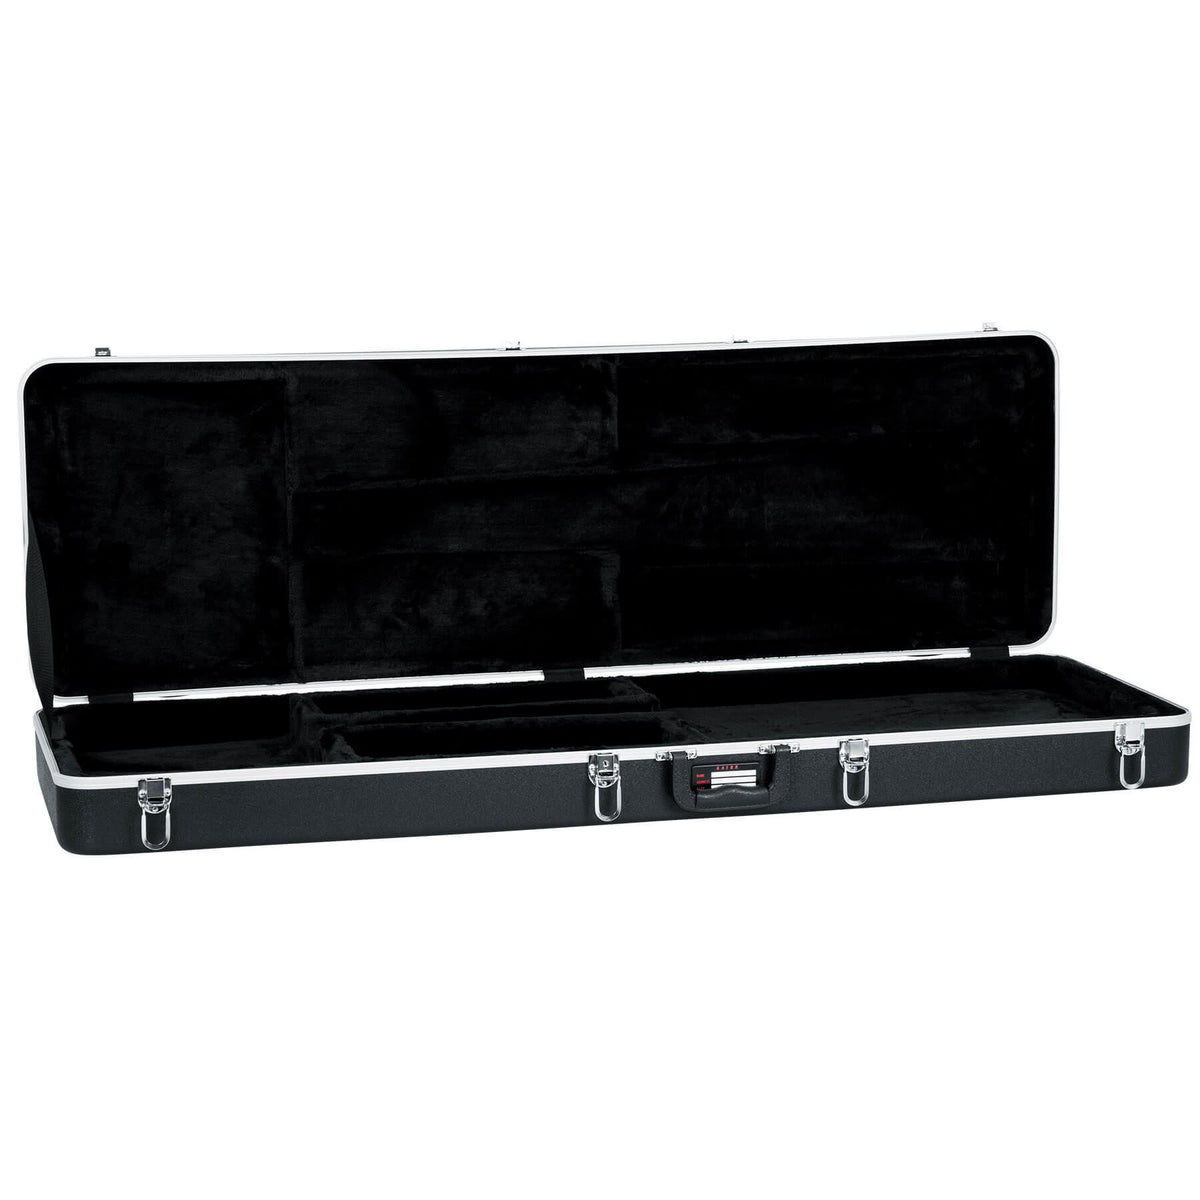 Gator Bass Guitar Case fits Ibanez ATK Series